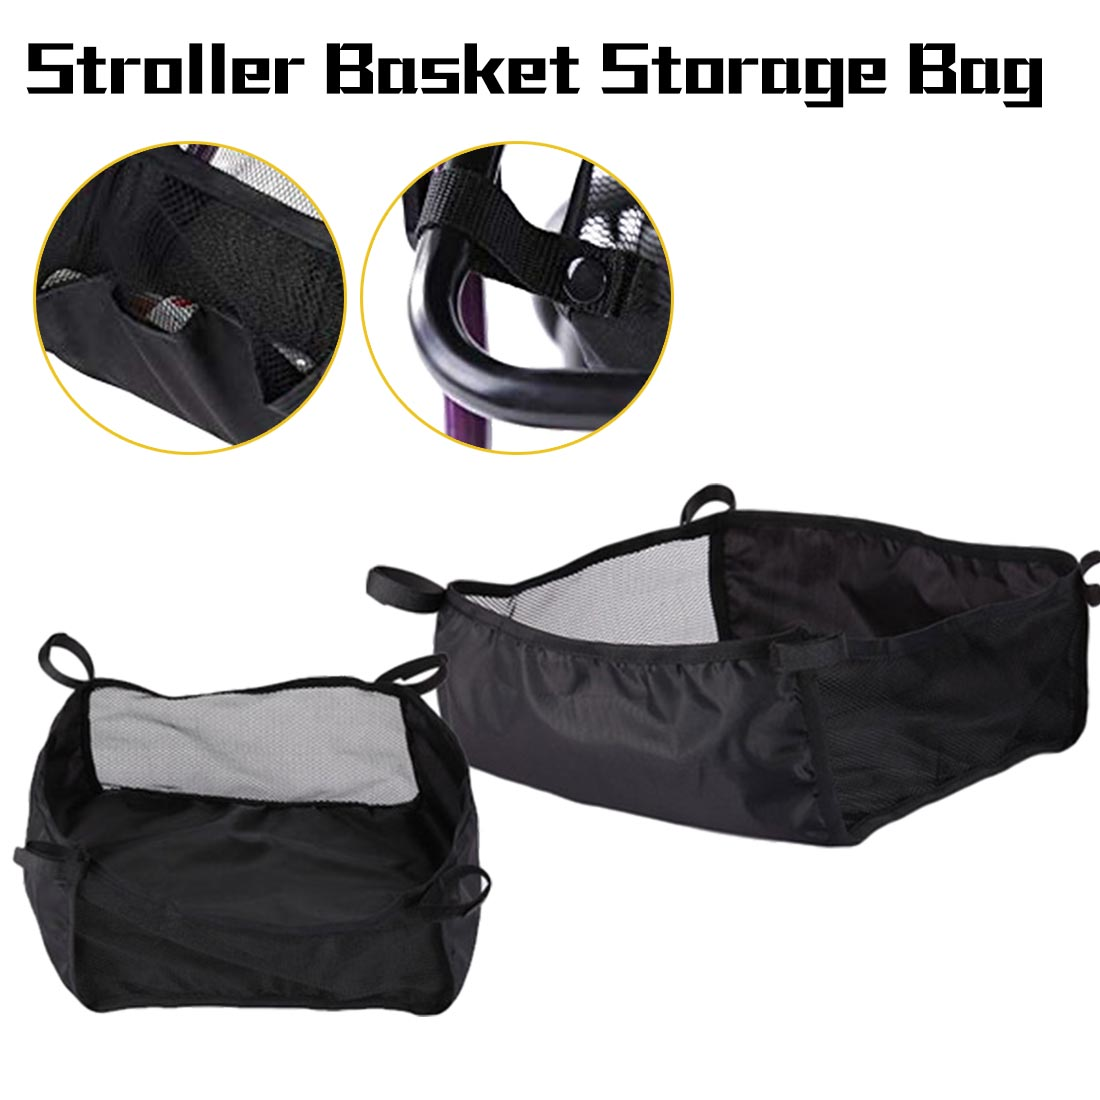 Stroller Basket Storage Bag Universal Portable Shopping Basket Baby Care Infant Stroller Accessories